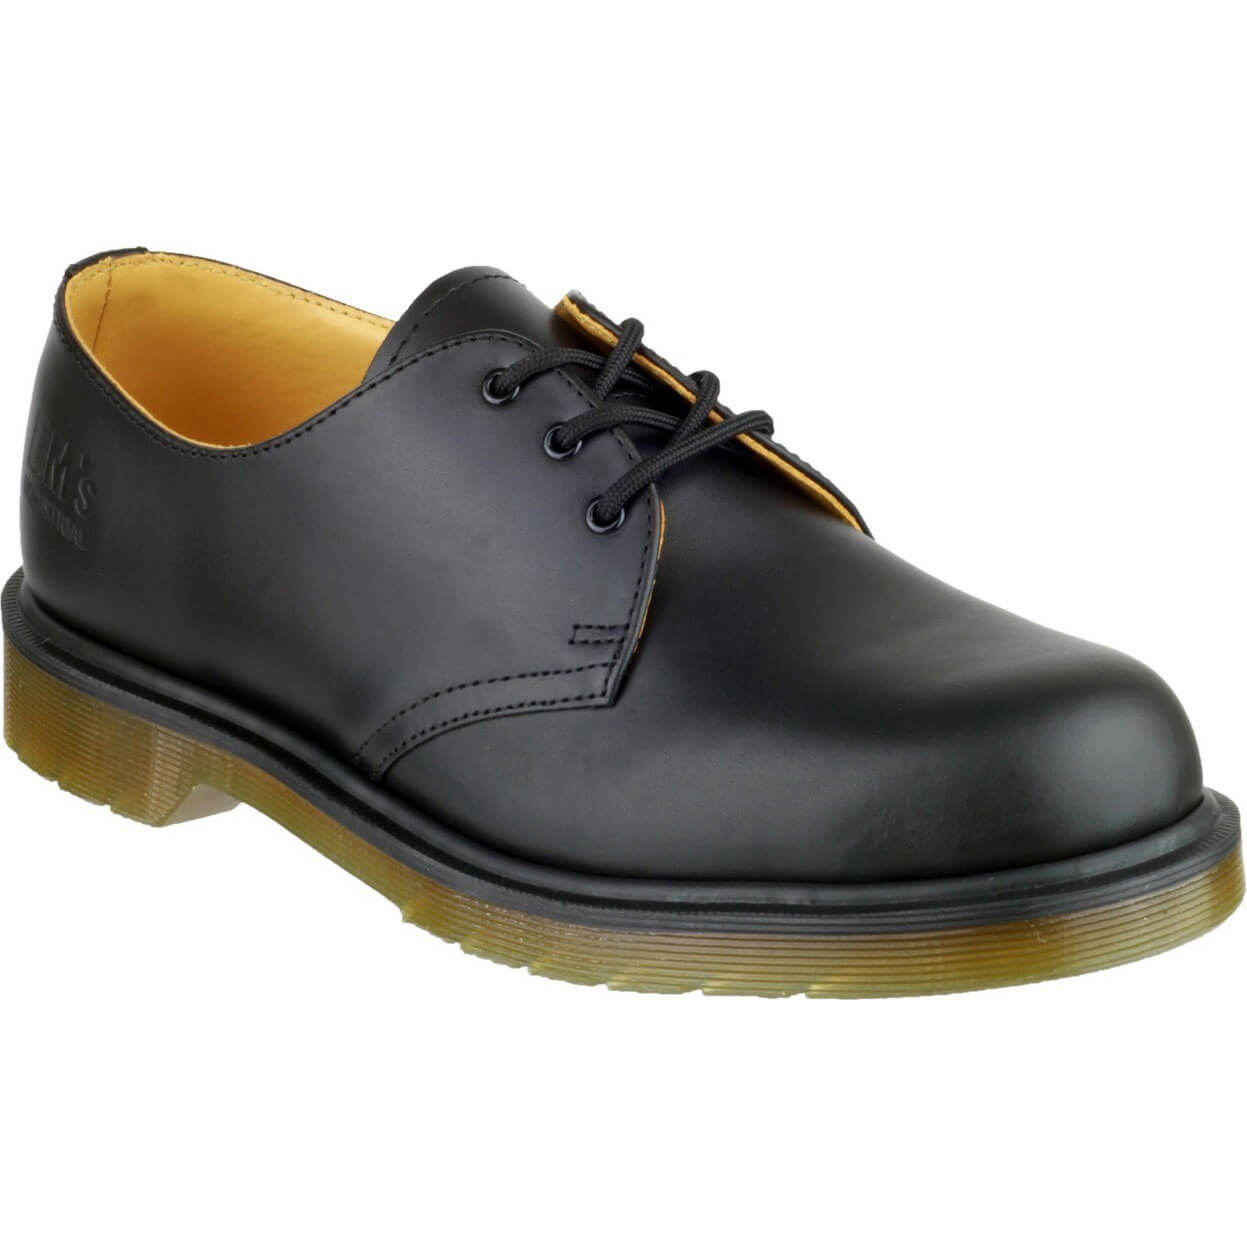 Image of Dr Martens B8249 Lace-Up Leather Shoe Black Size 10